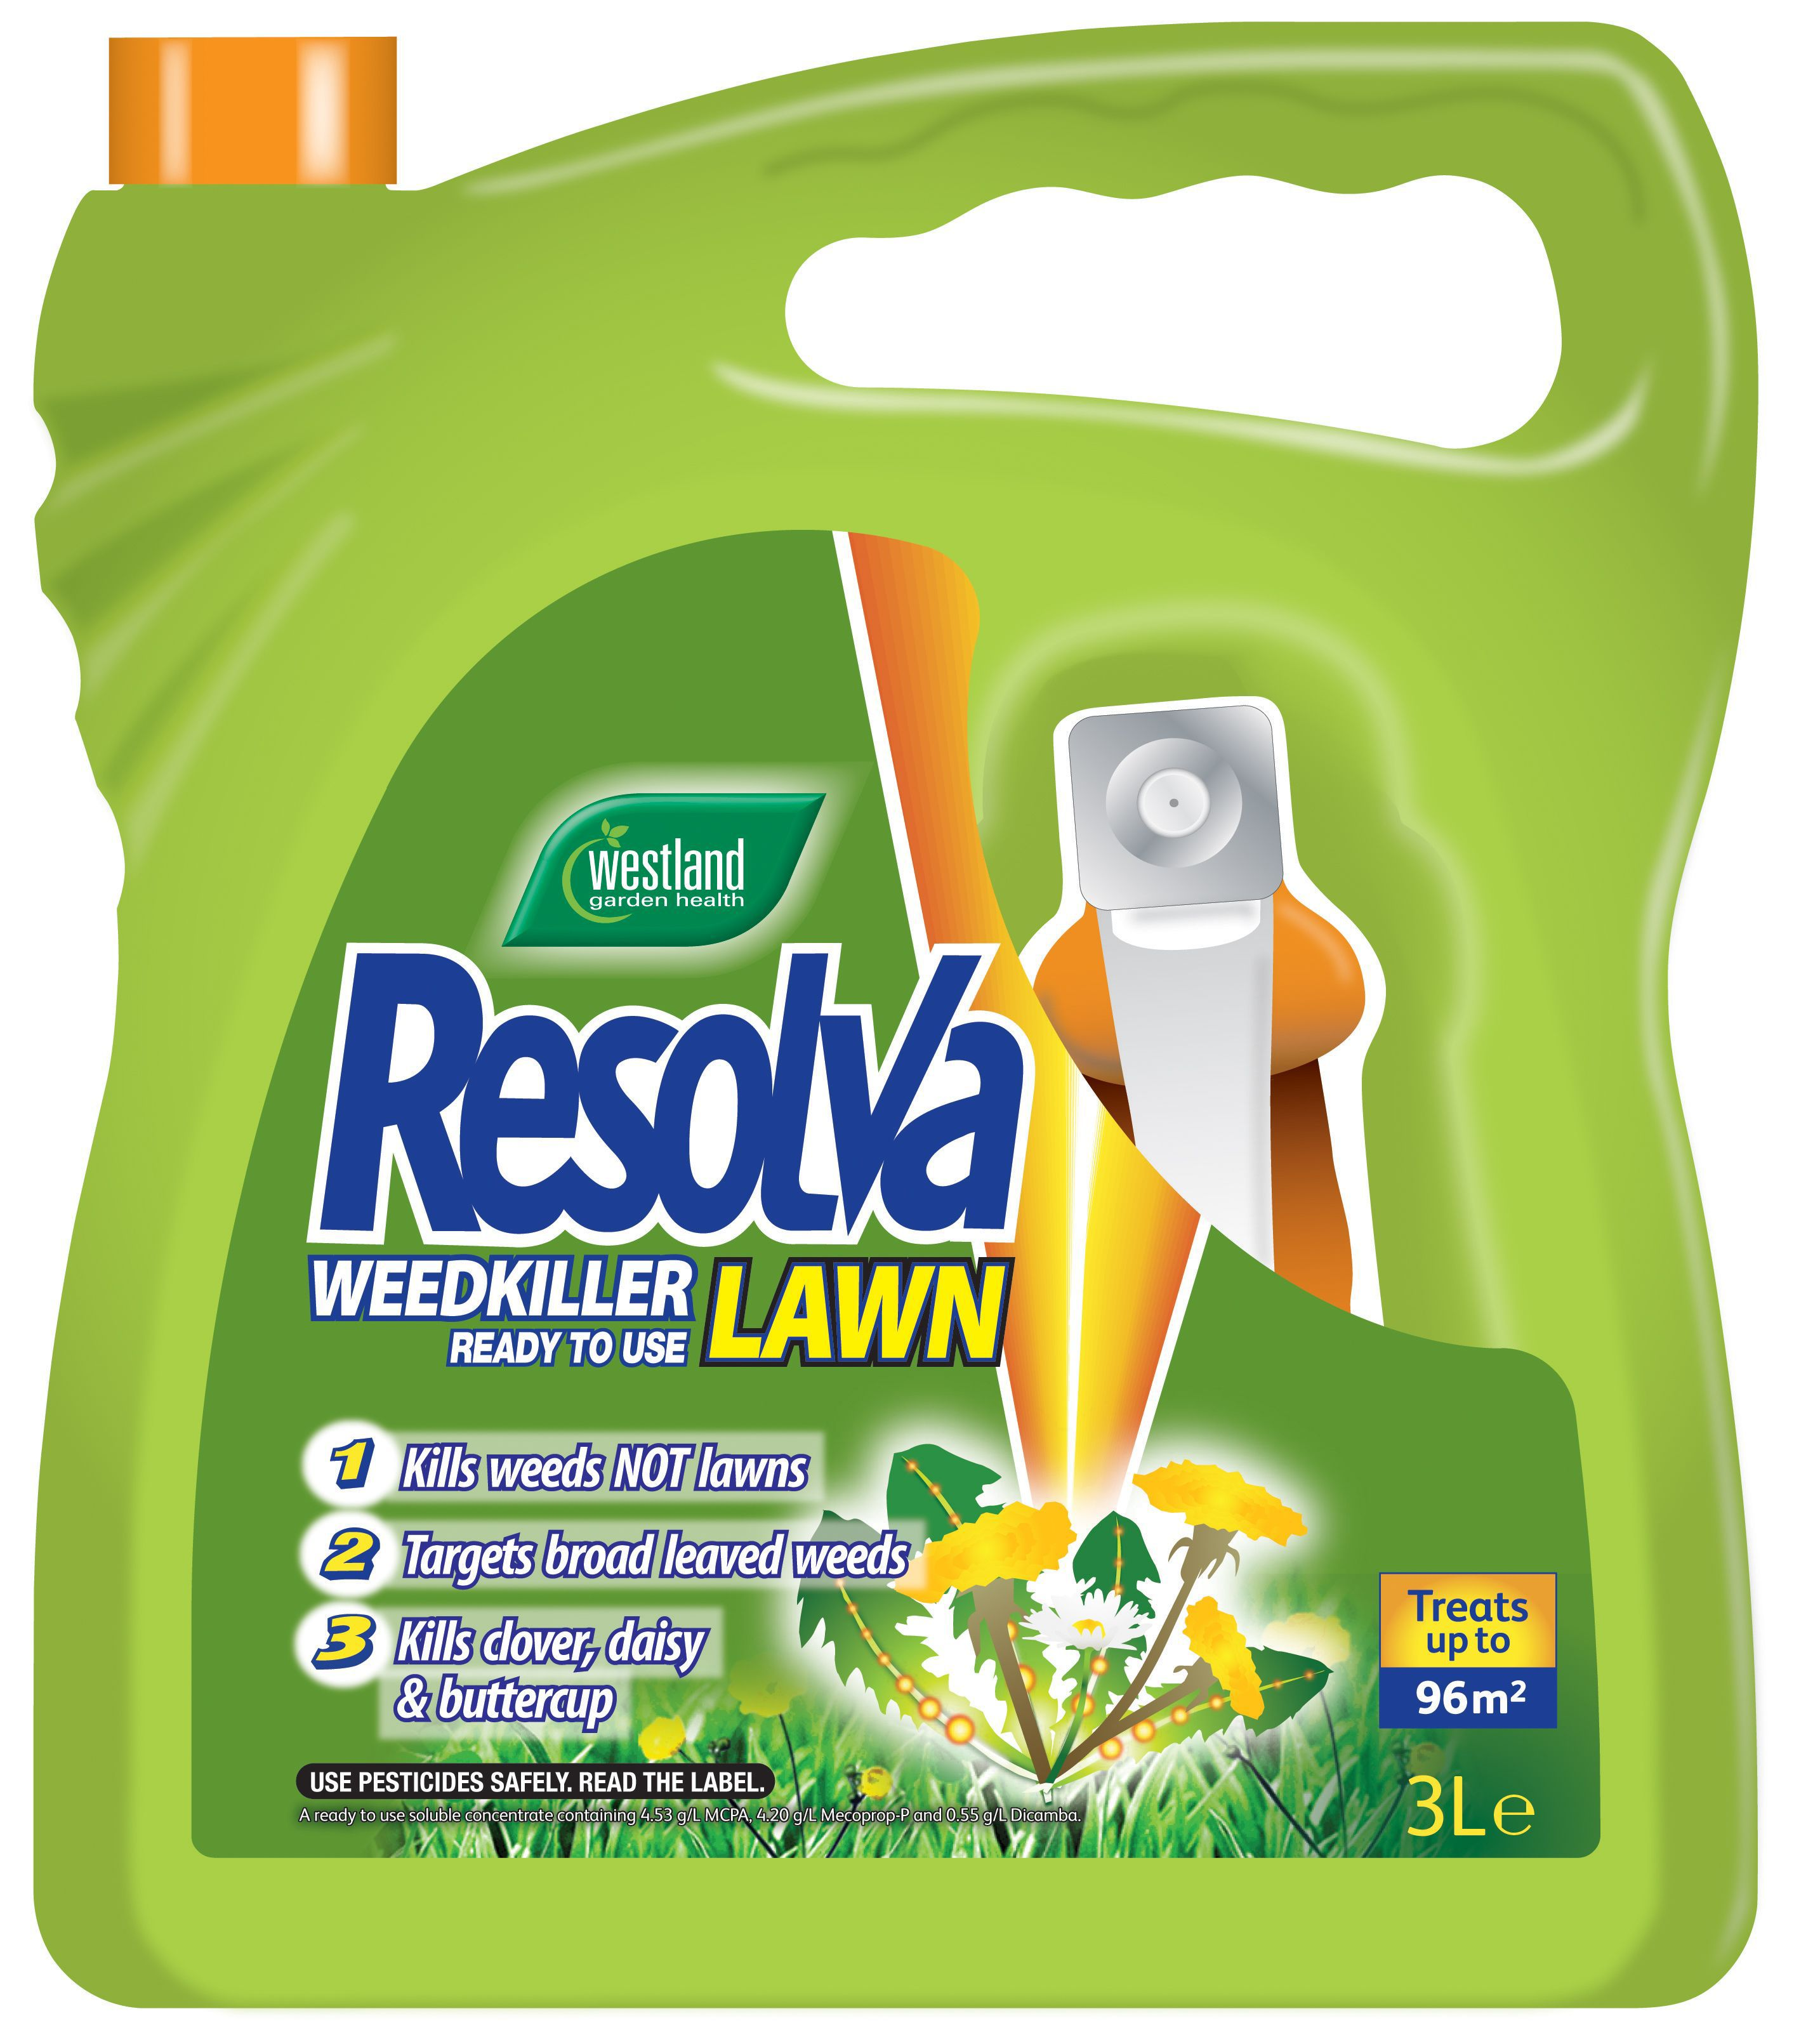 resolva lawn ready to use weed killer 3l. Black Bedroom Furniture Sets. Home Design Ideas